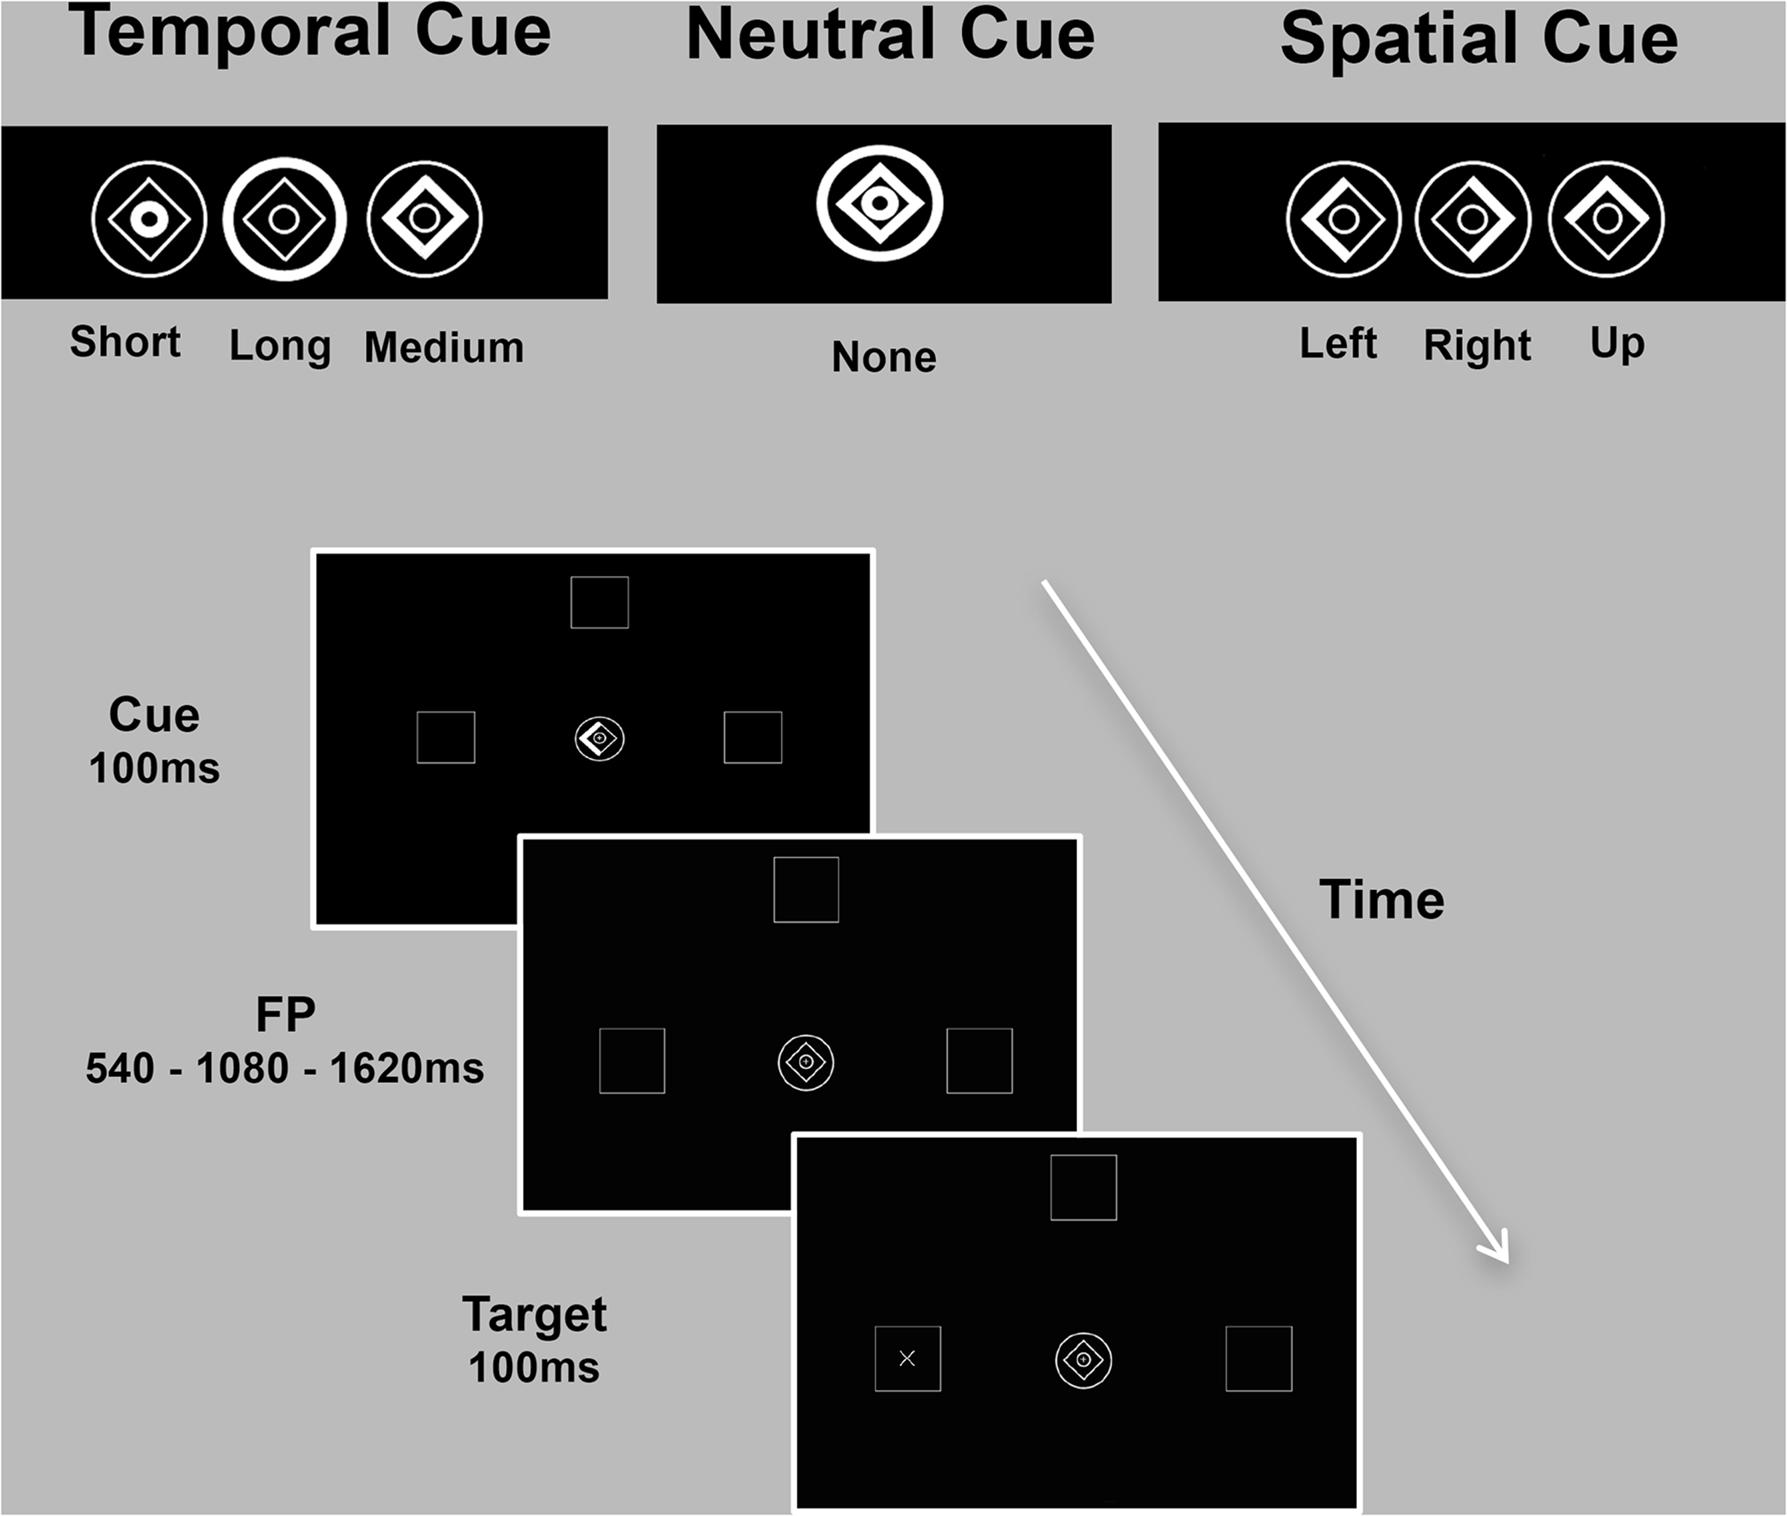 Frontiers Segregation Of Brain Structural Networks Supports Spatio And Split As Shown On A Timespace Diagram The